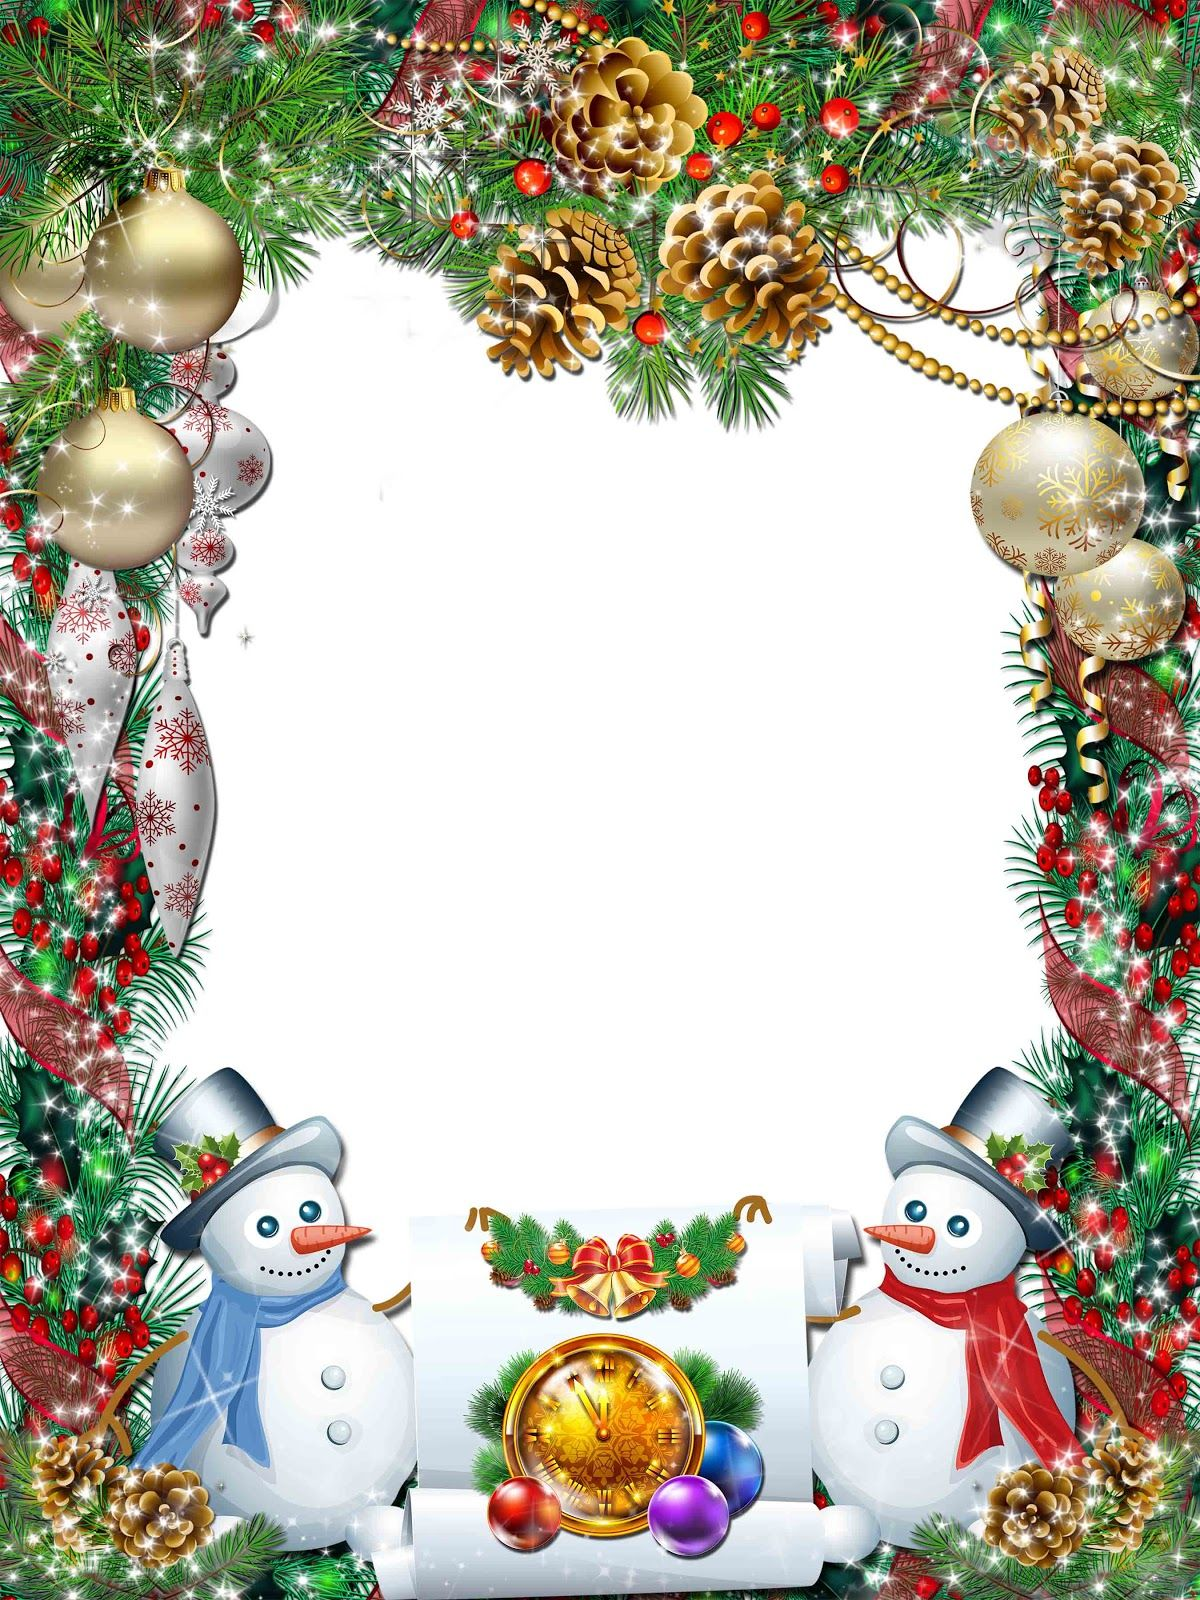 christmas frames | download Christmas png frame (free) | Christmas ...